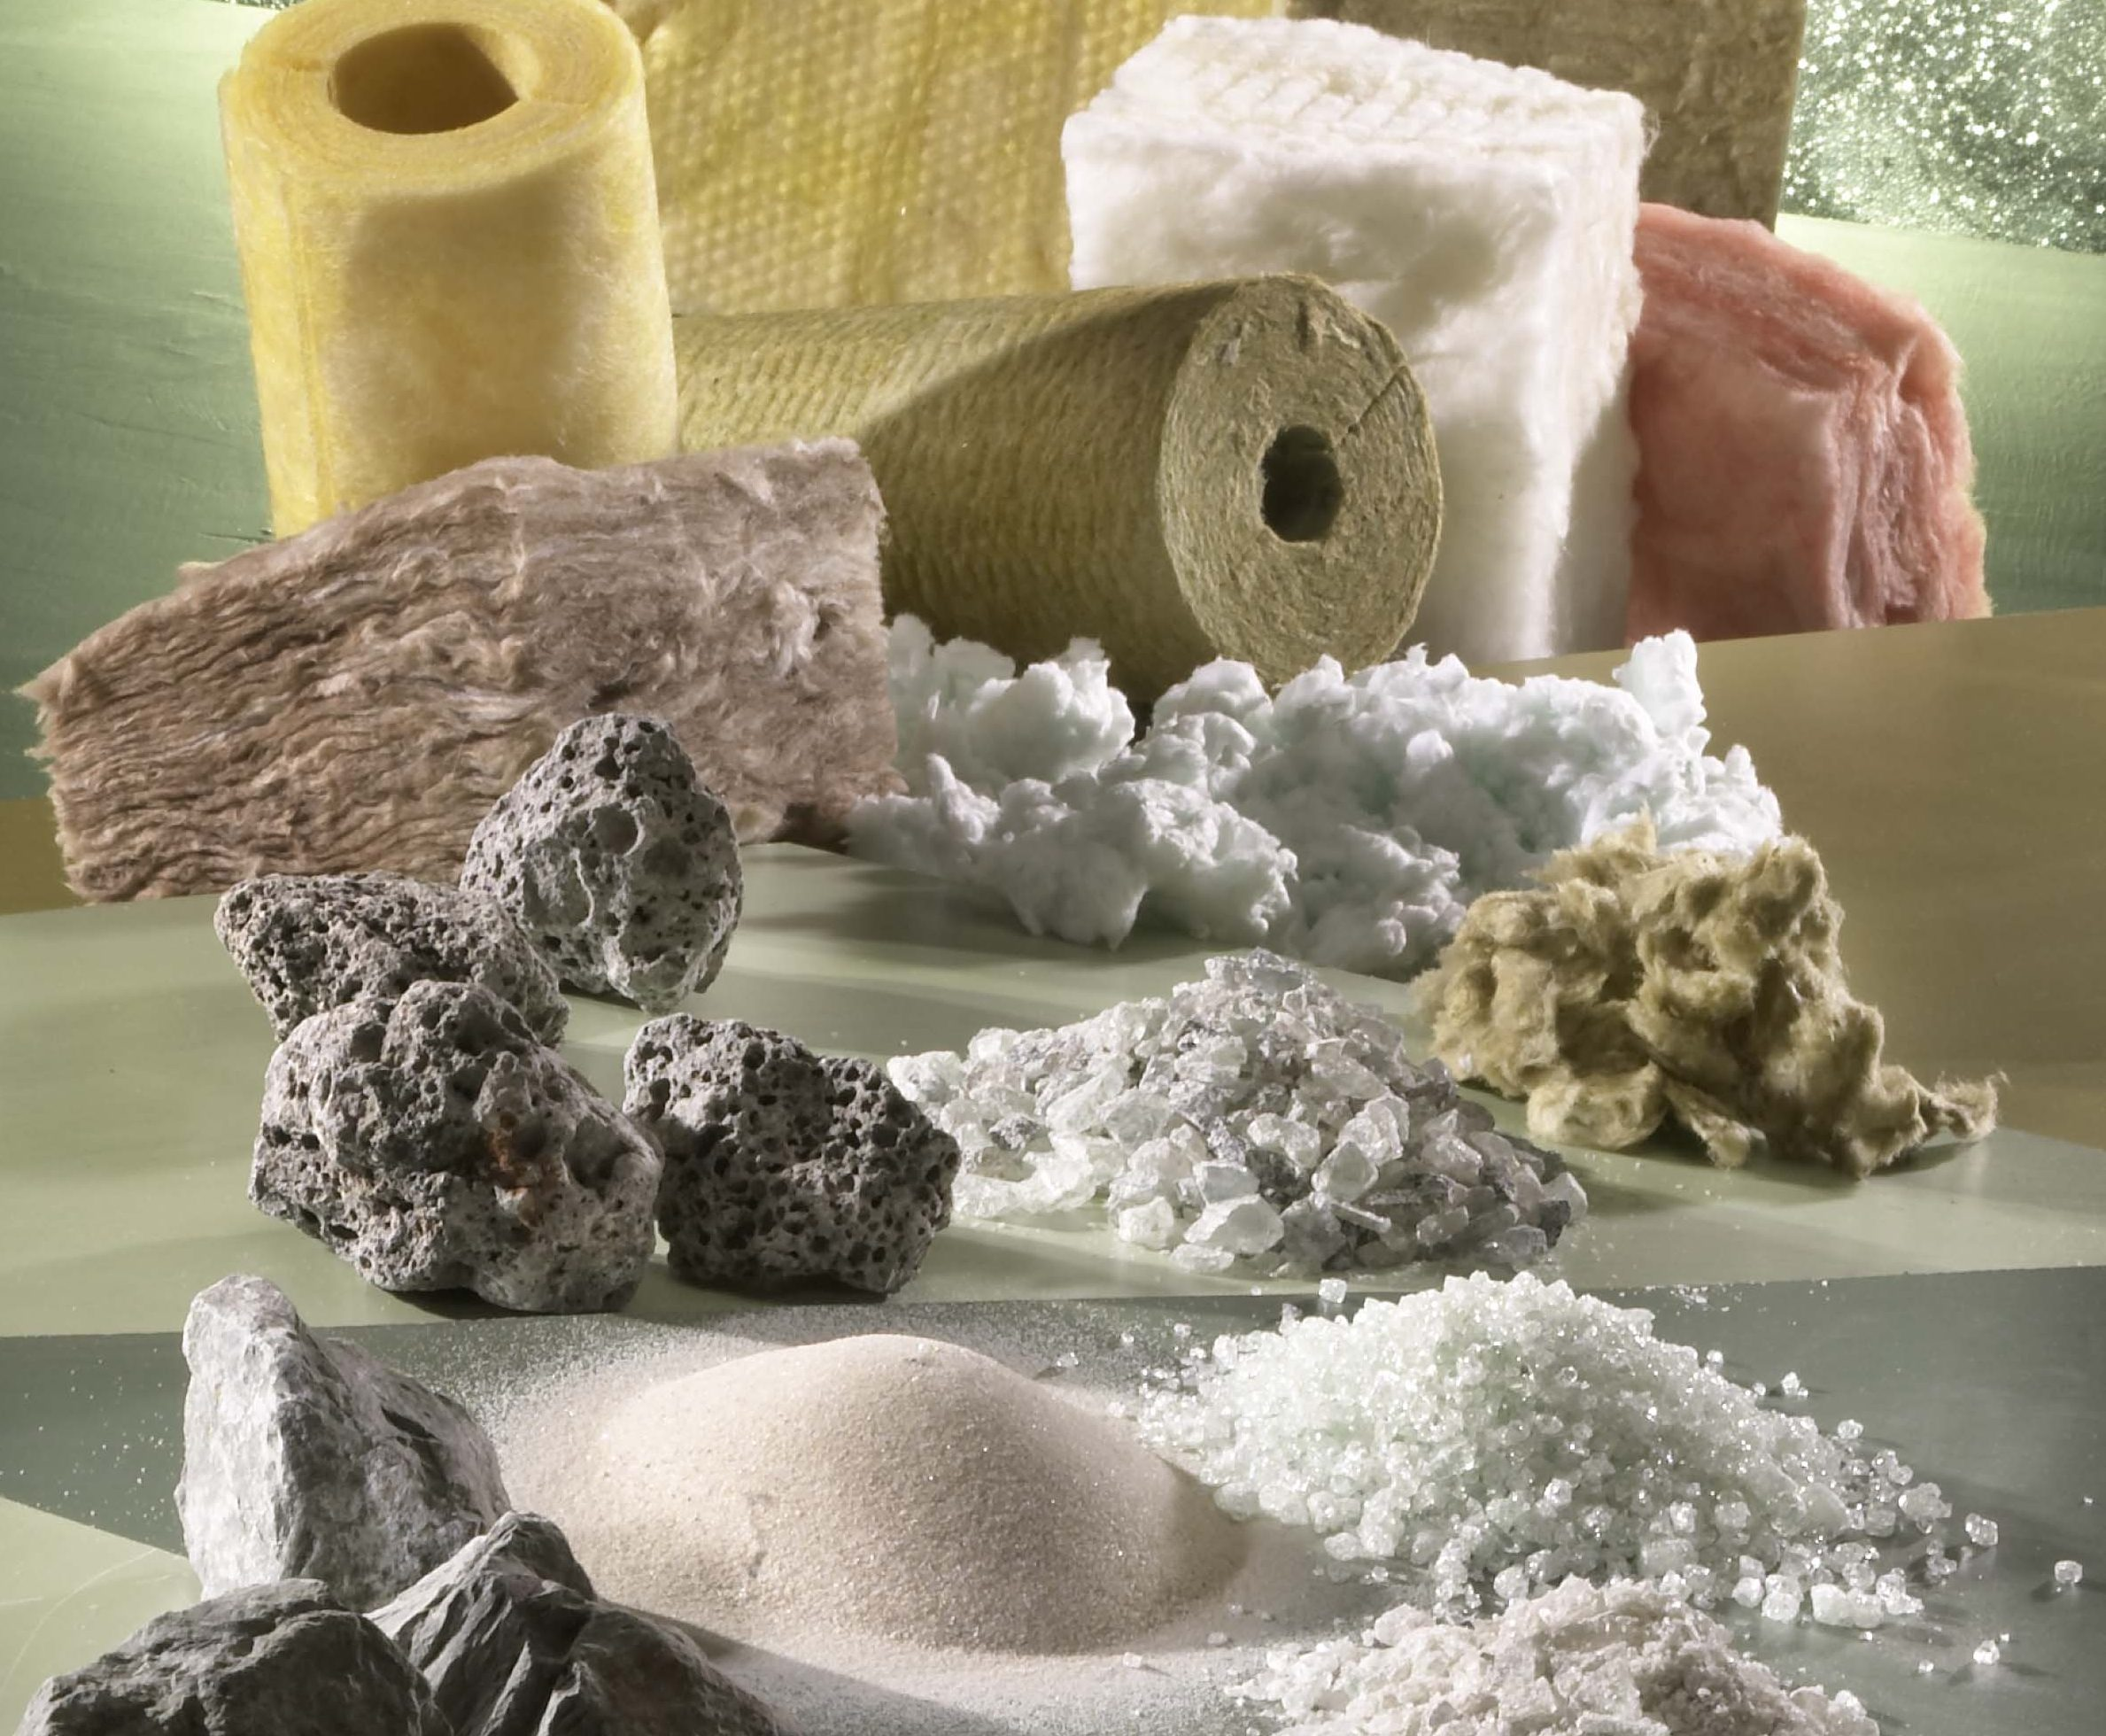 Canadian insulation manufacturers used nearly 300 million pounds of recycled material in 2012